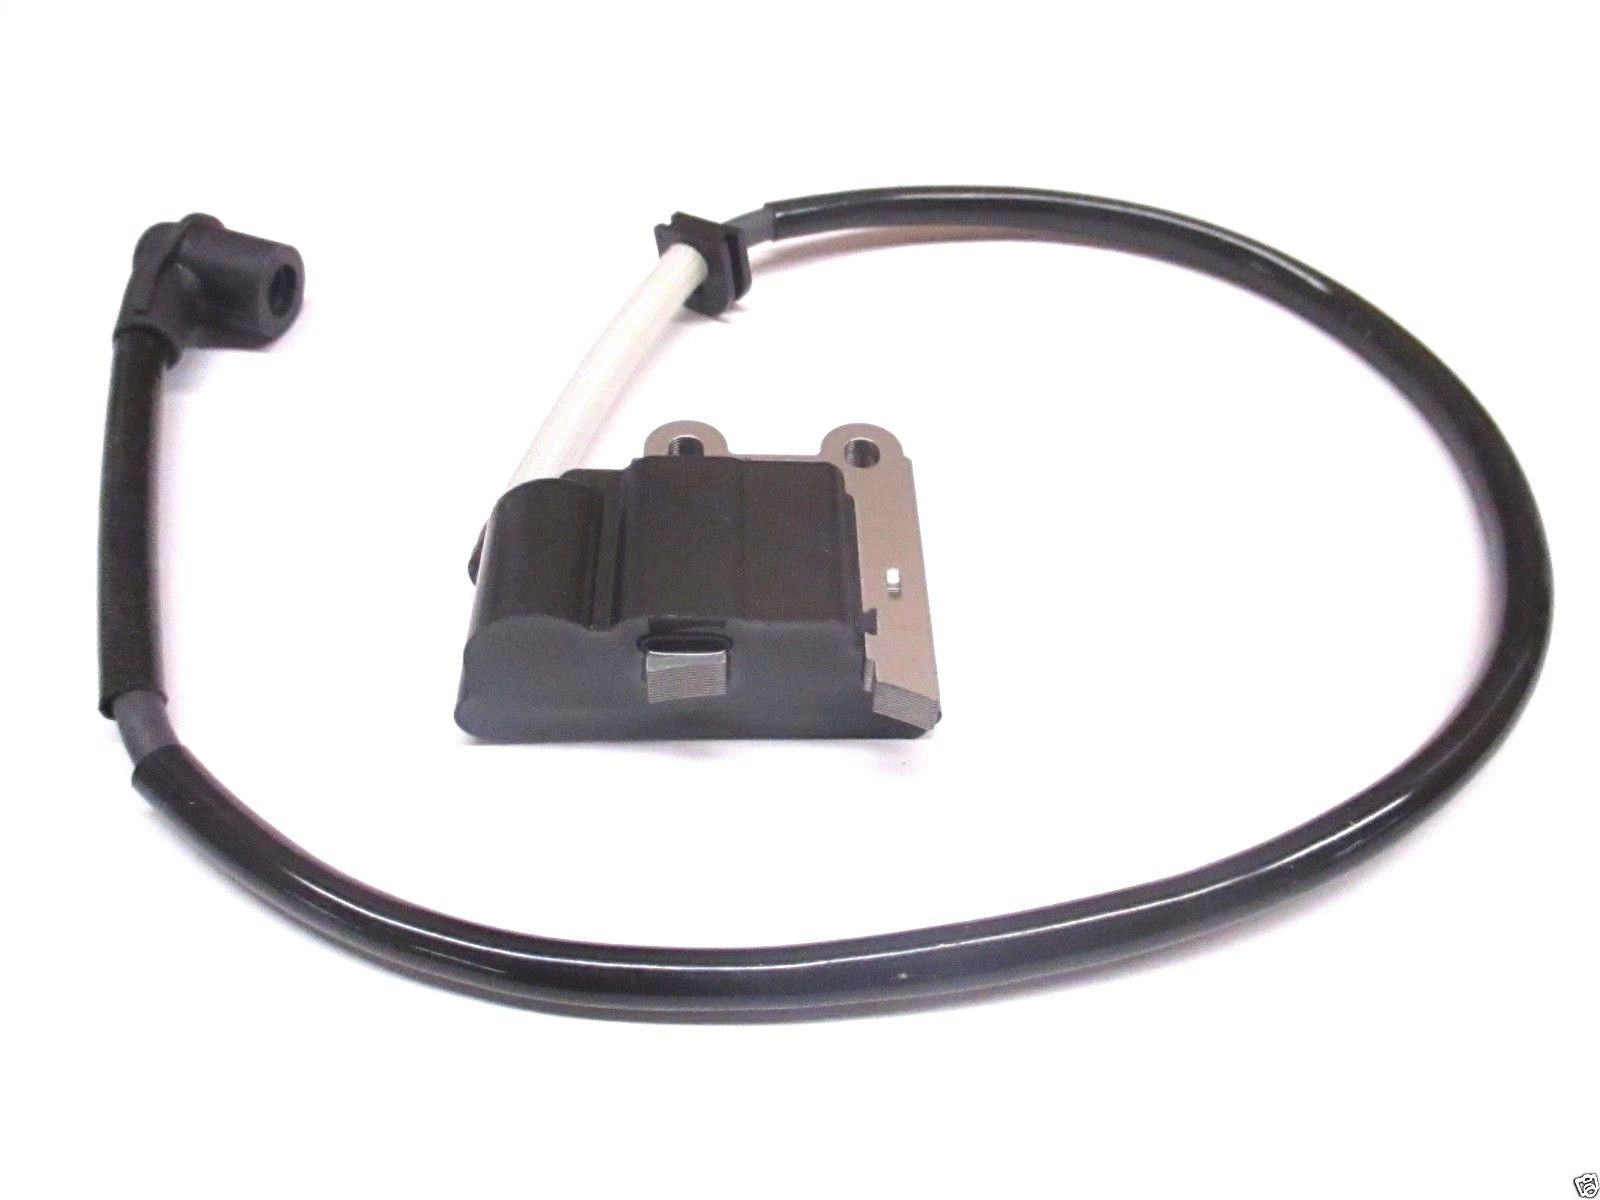 Details about Genuine Husqvarna 502846401 Ignition Module Coil Fits 150BF  150BT 350BF 350BT